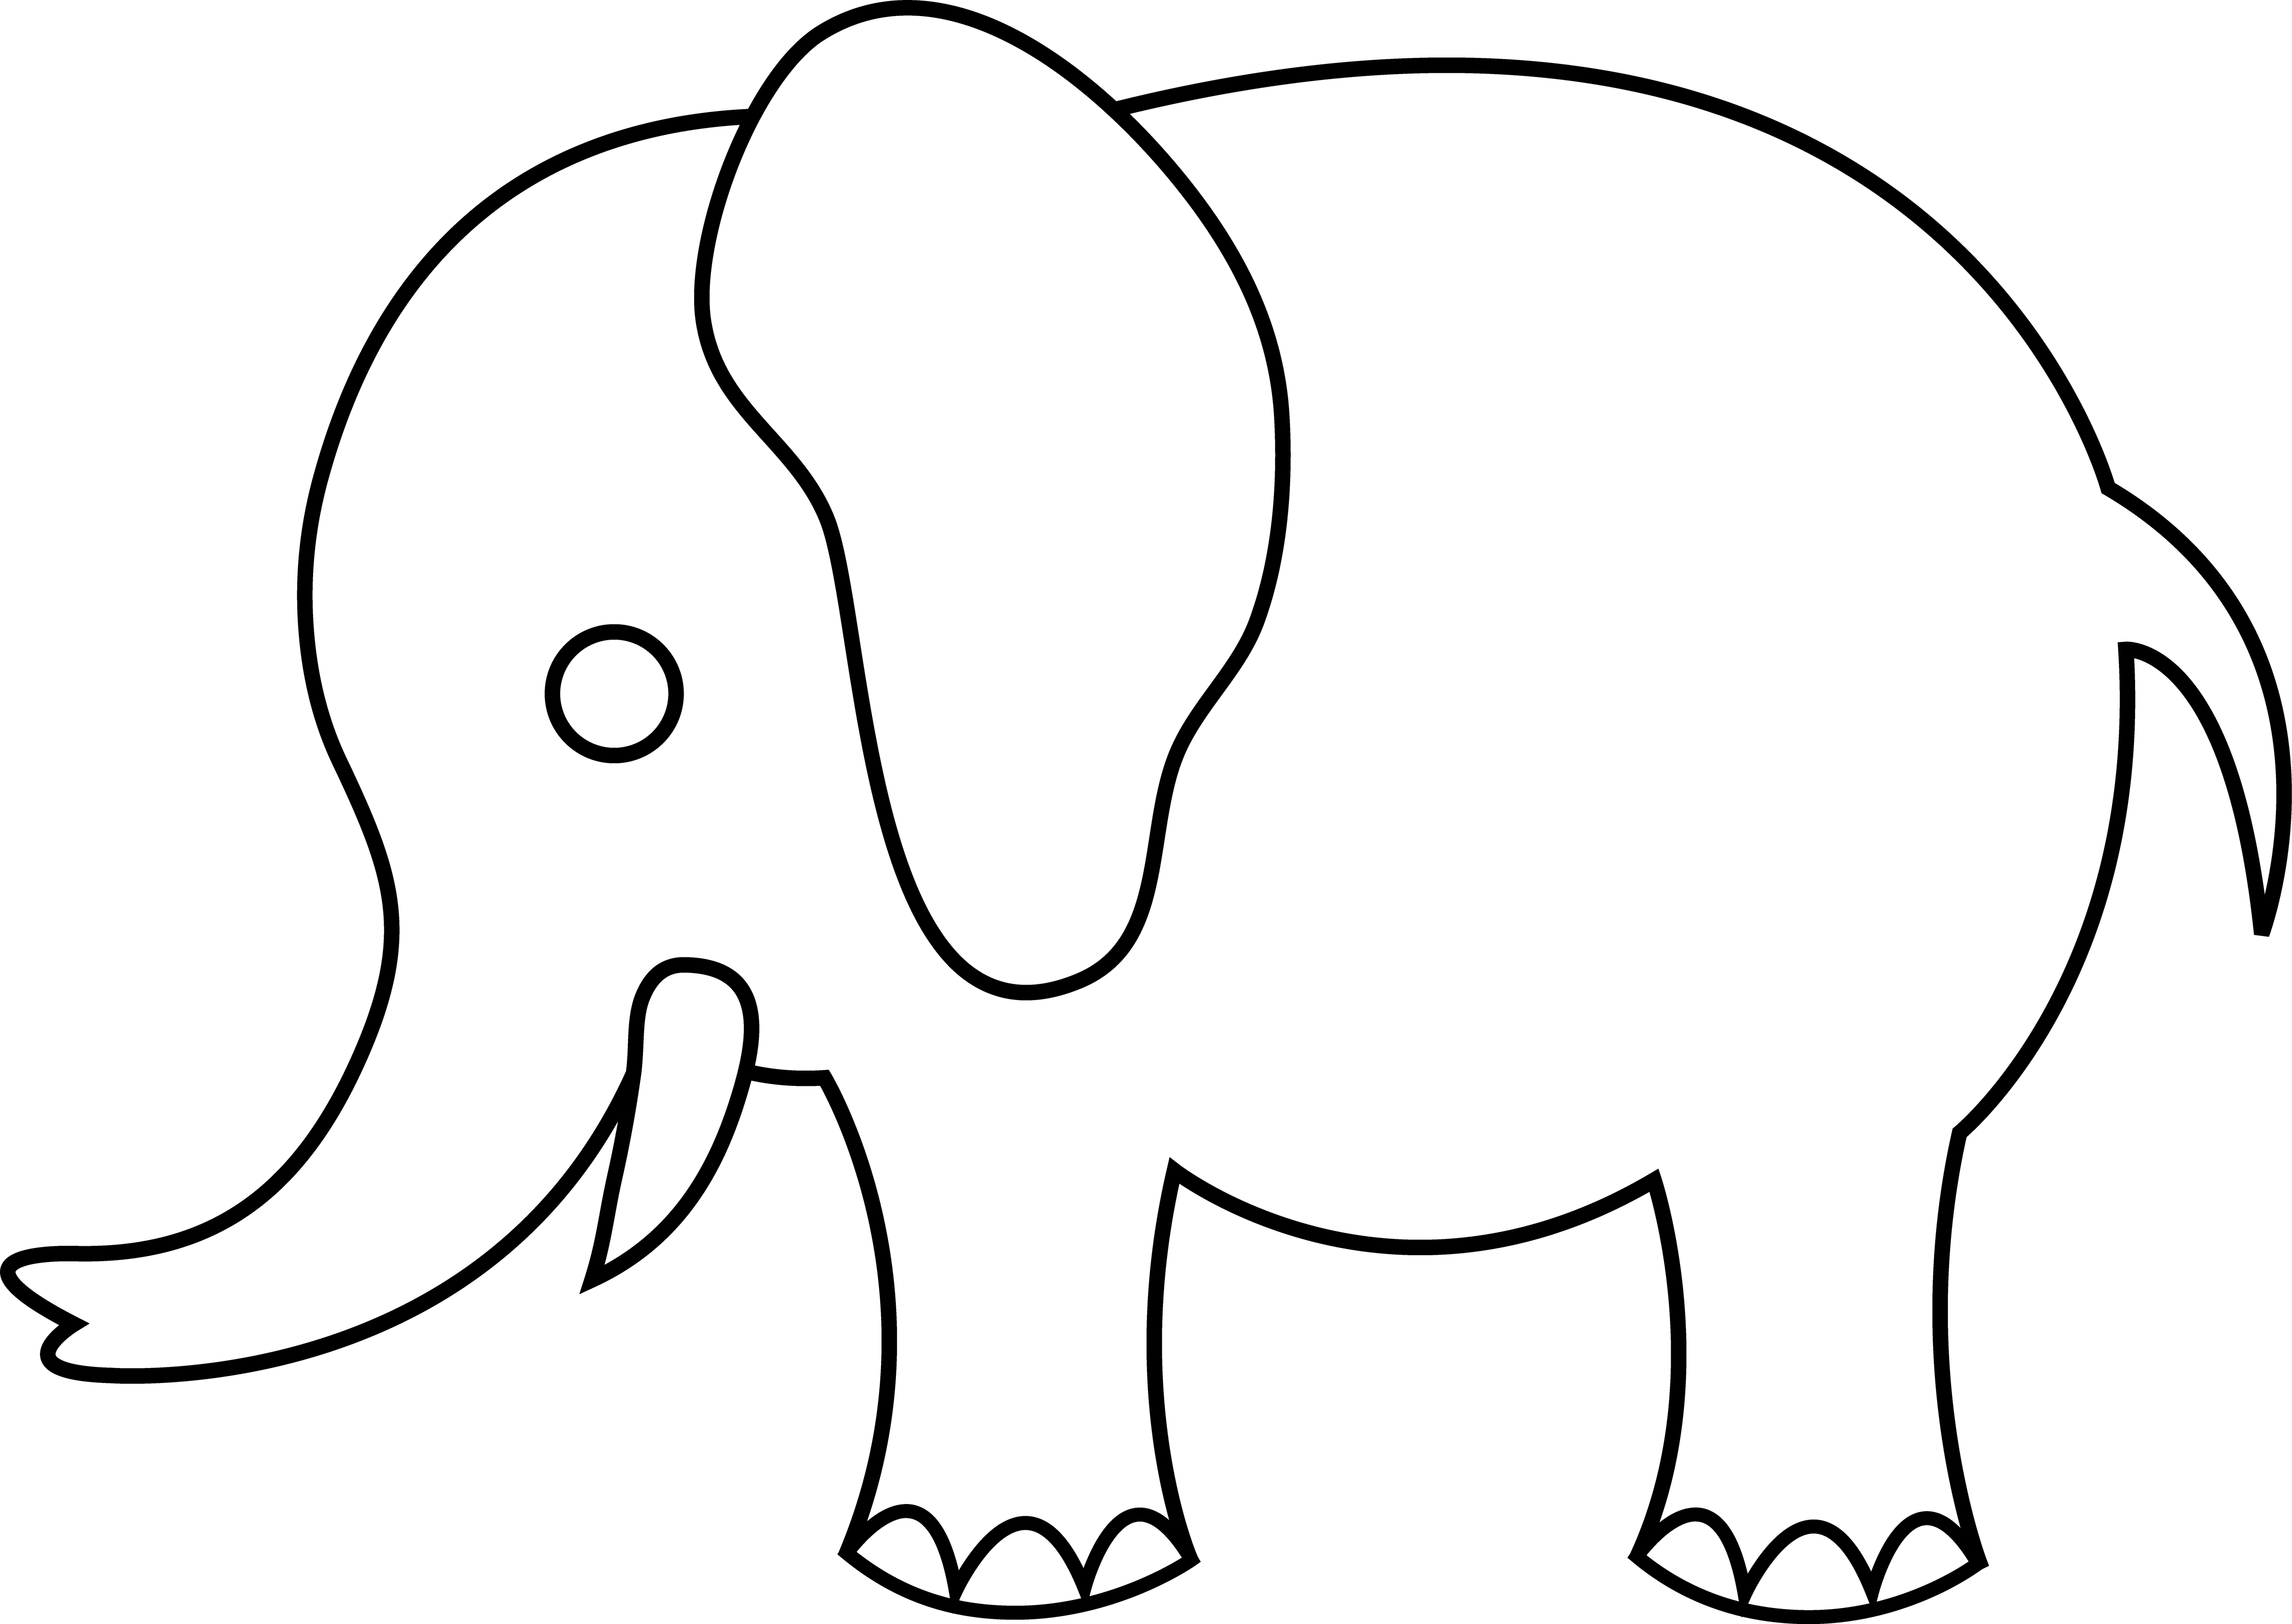 Drawing elephants face. Free elephant outline cliparts